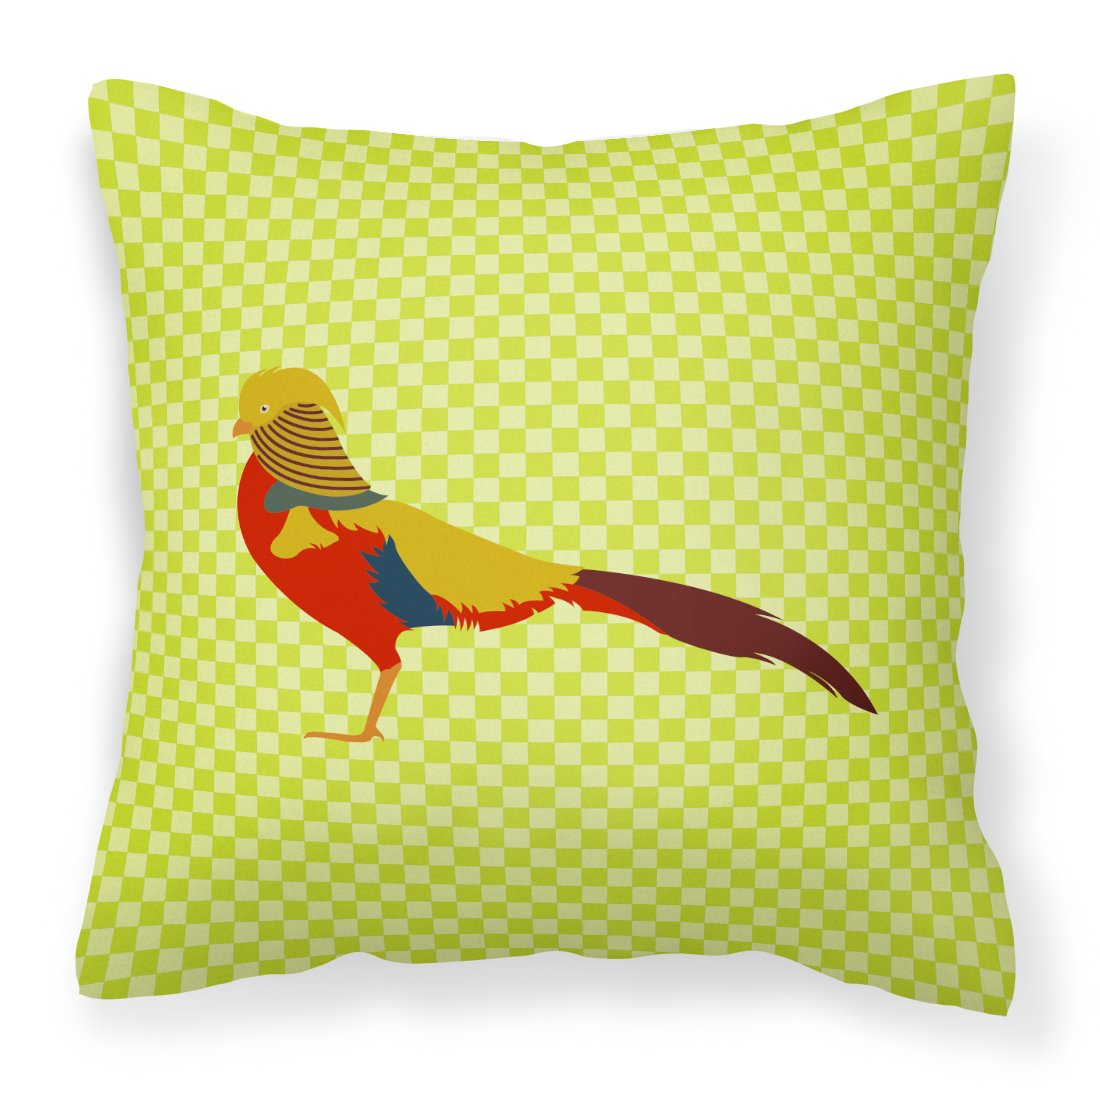 Multicolor Carolines Treasures BB7754PW1818 Golden or Chinese Pheasant Green Fabric Decorative Pillow 18H x18W